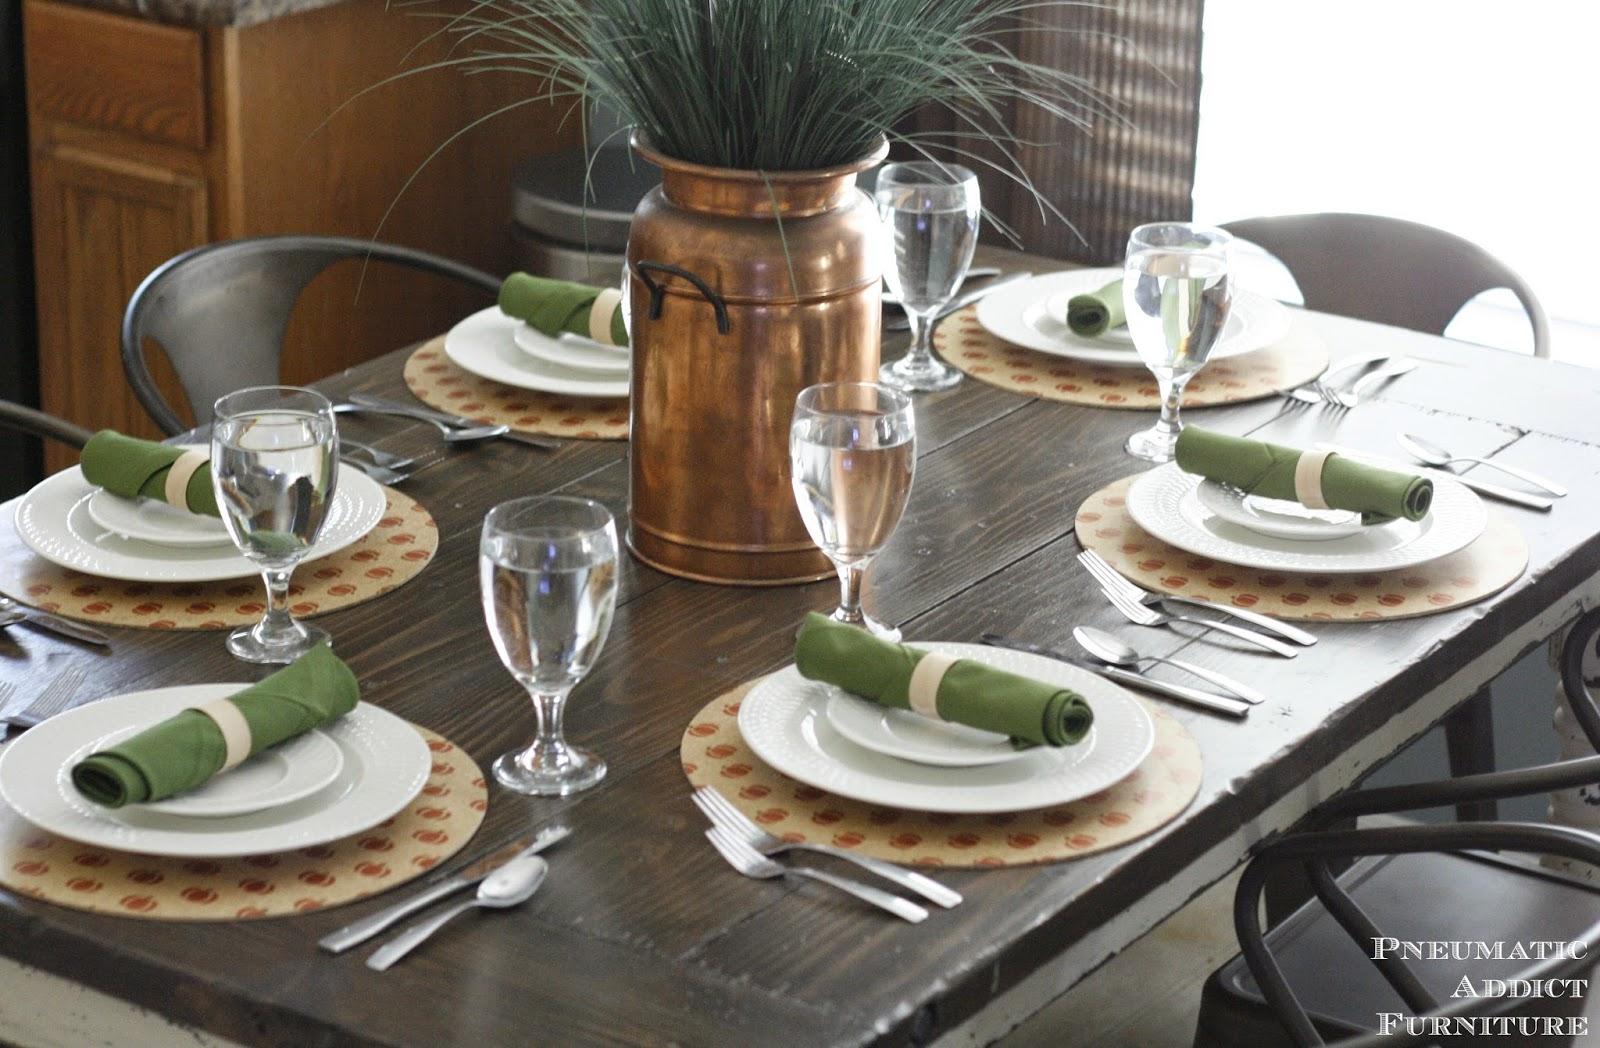 What do you think? Thanksgiving is just around the corner. Are you going to have a set of DIY wood plate chargers at your table? & Pneumatic Addict : DIY Wood Plate Chargers